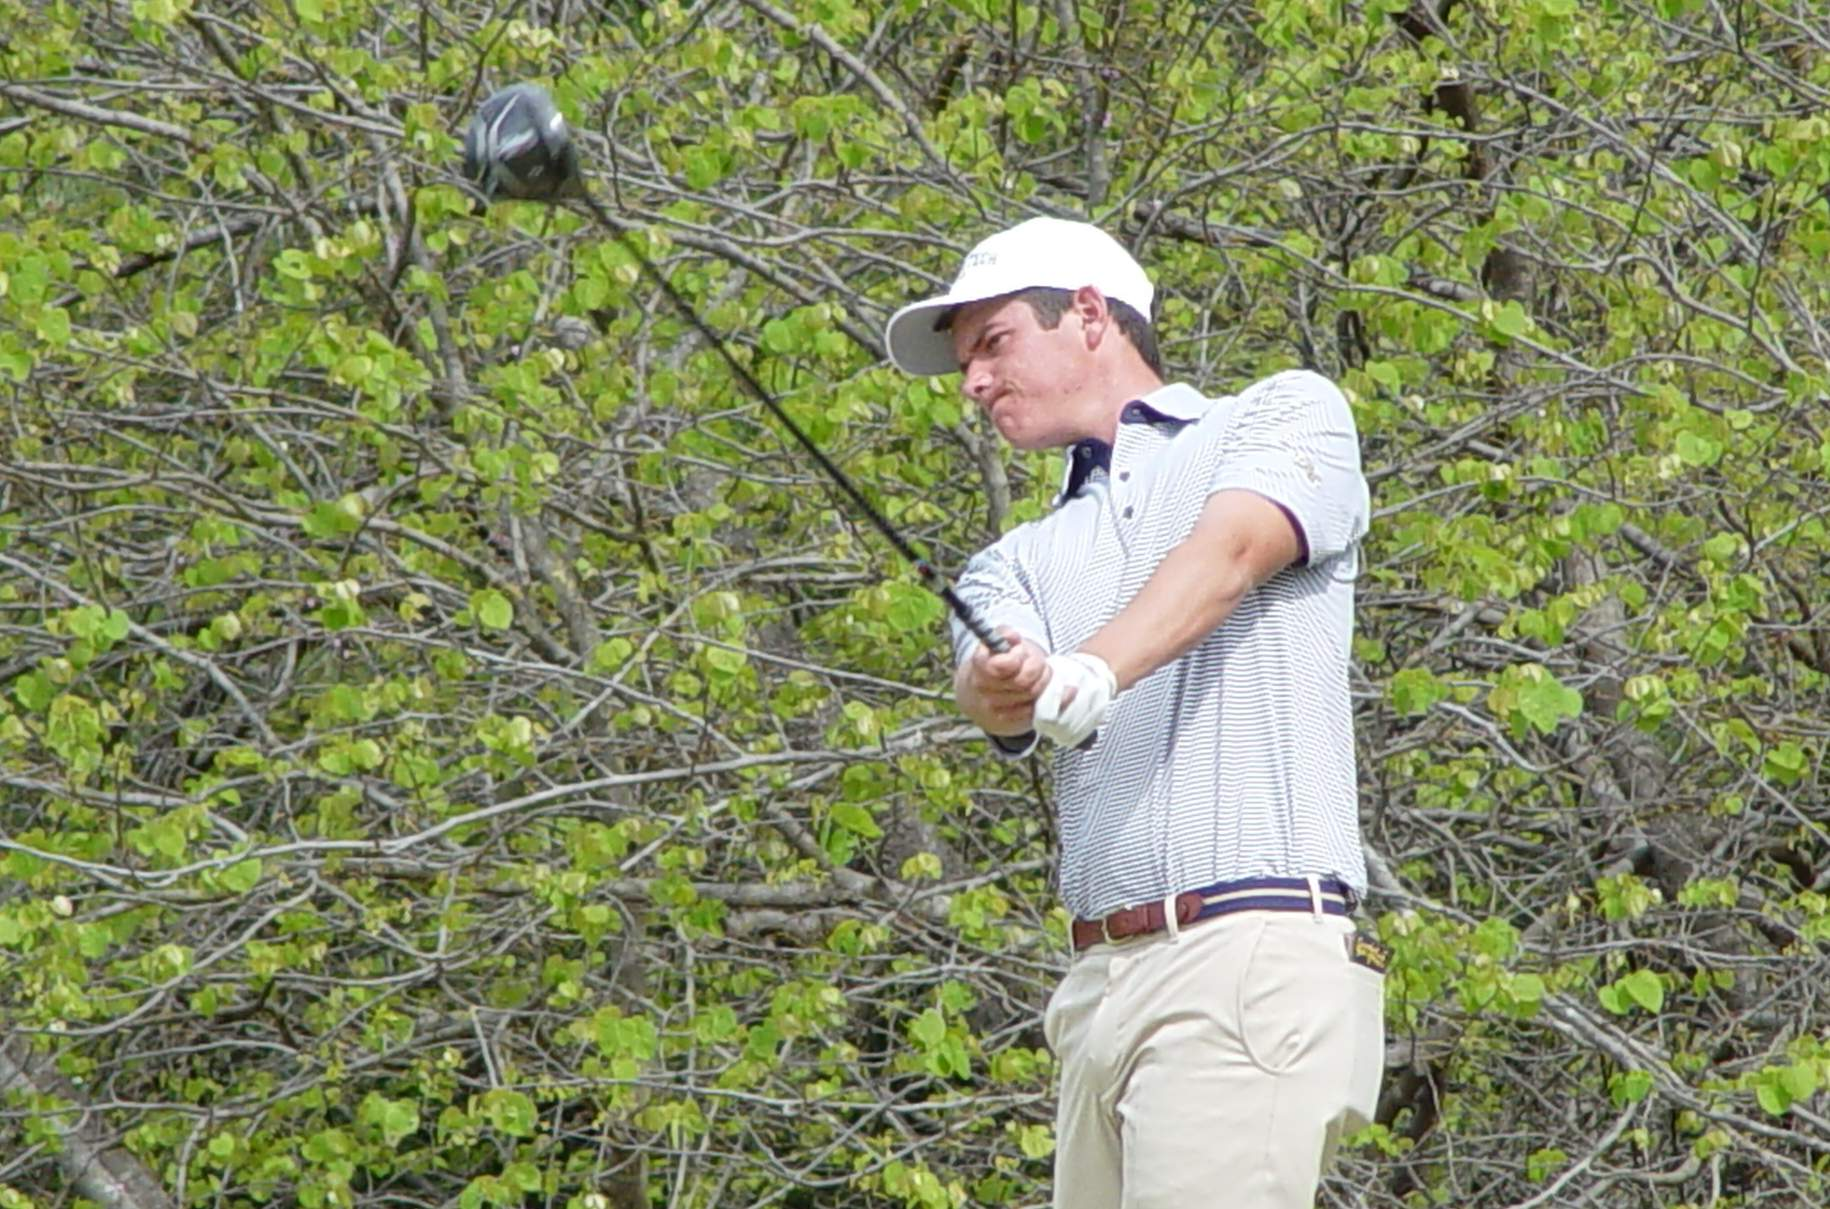 Georgia Tech freshman Noah Norton in the final round of the ACC Men's Golf Championship, April 22, 2018, Old North State Club, New London, N.C.